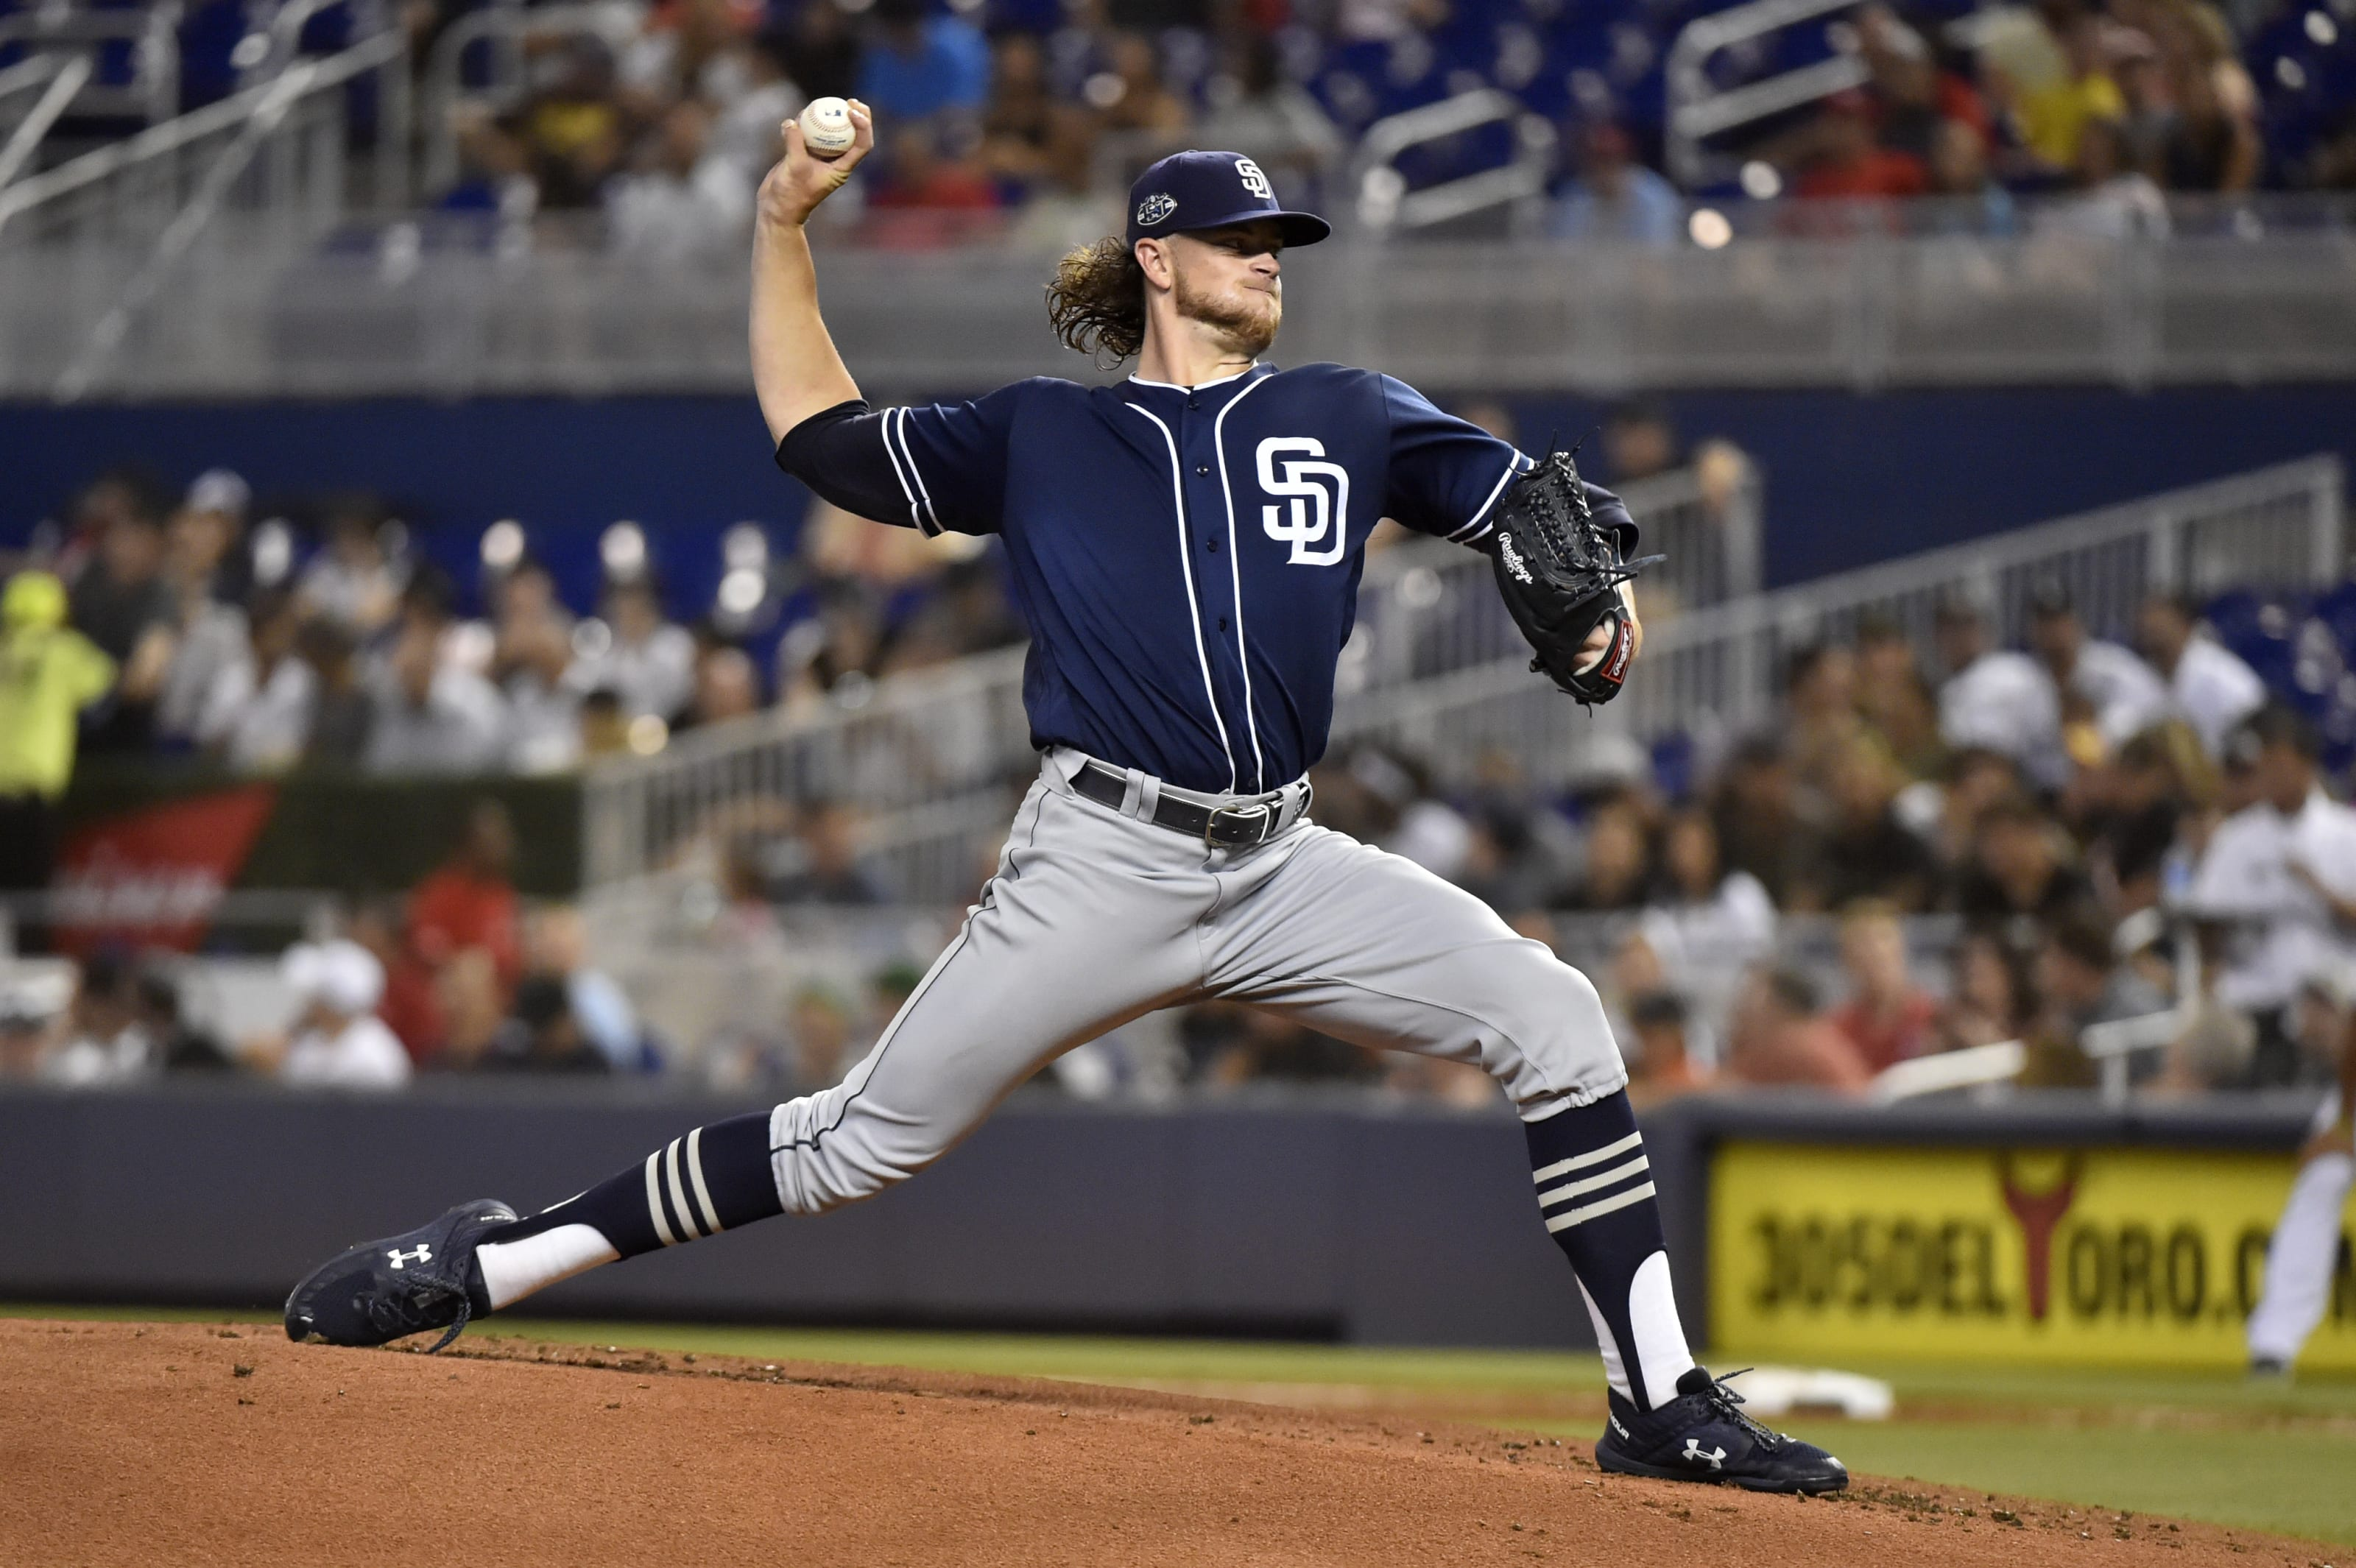 Chris Paddack of the San Diego Padres flirts with no-hitter